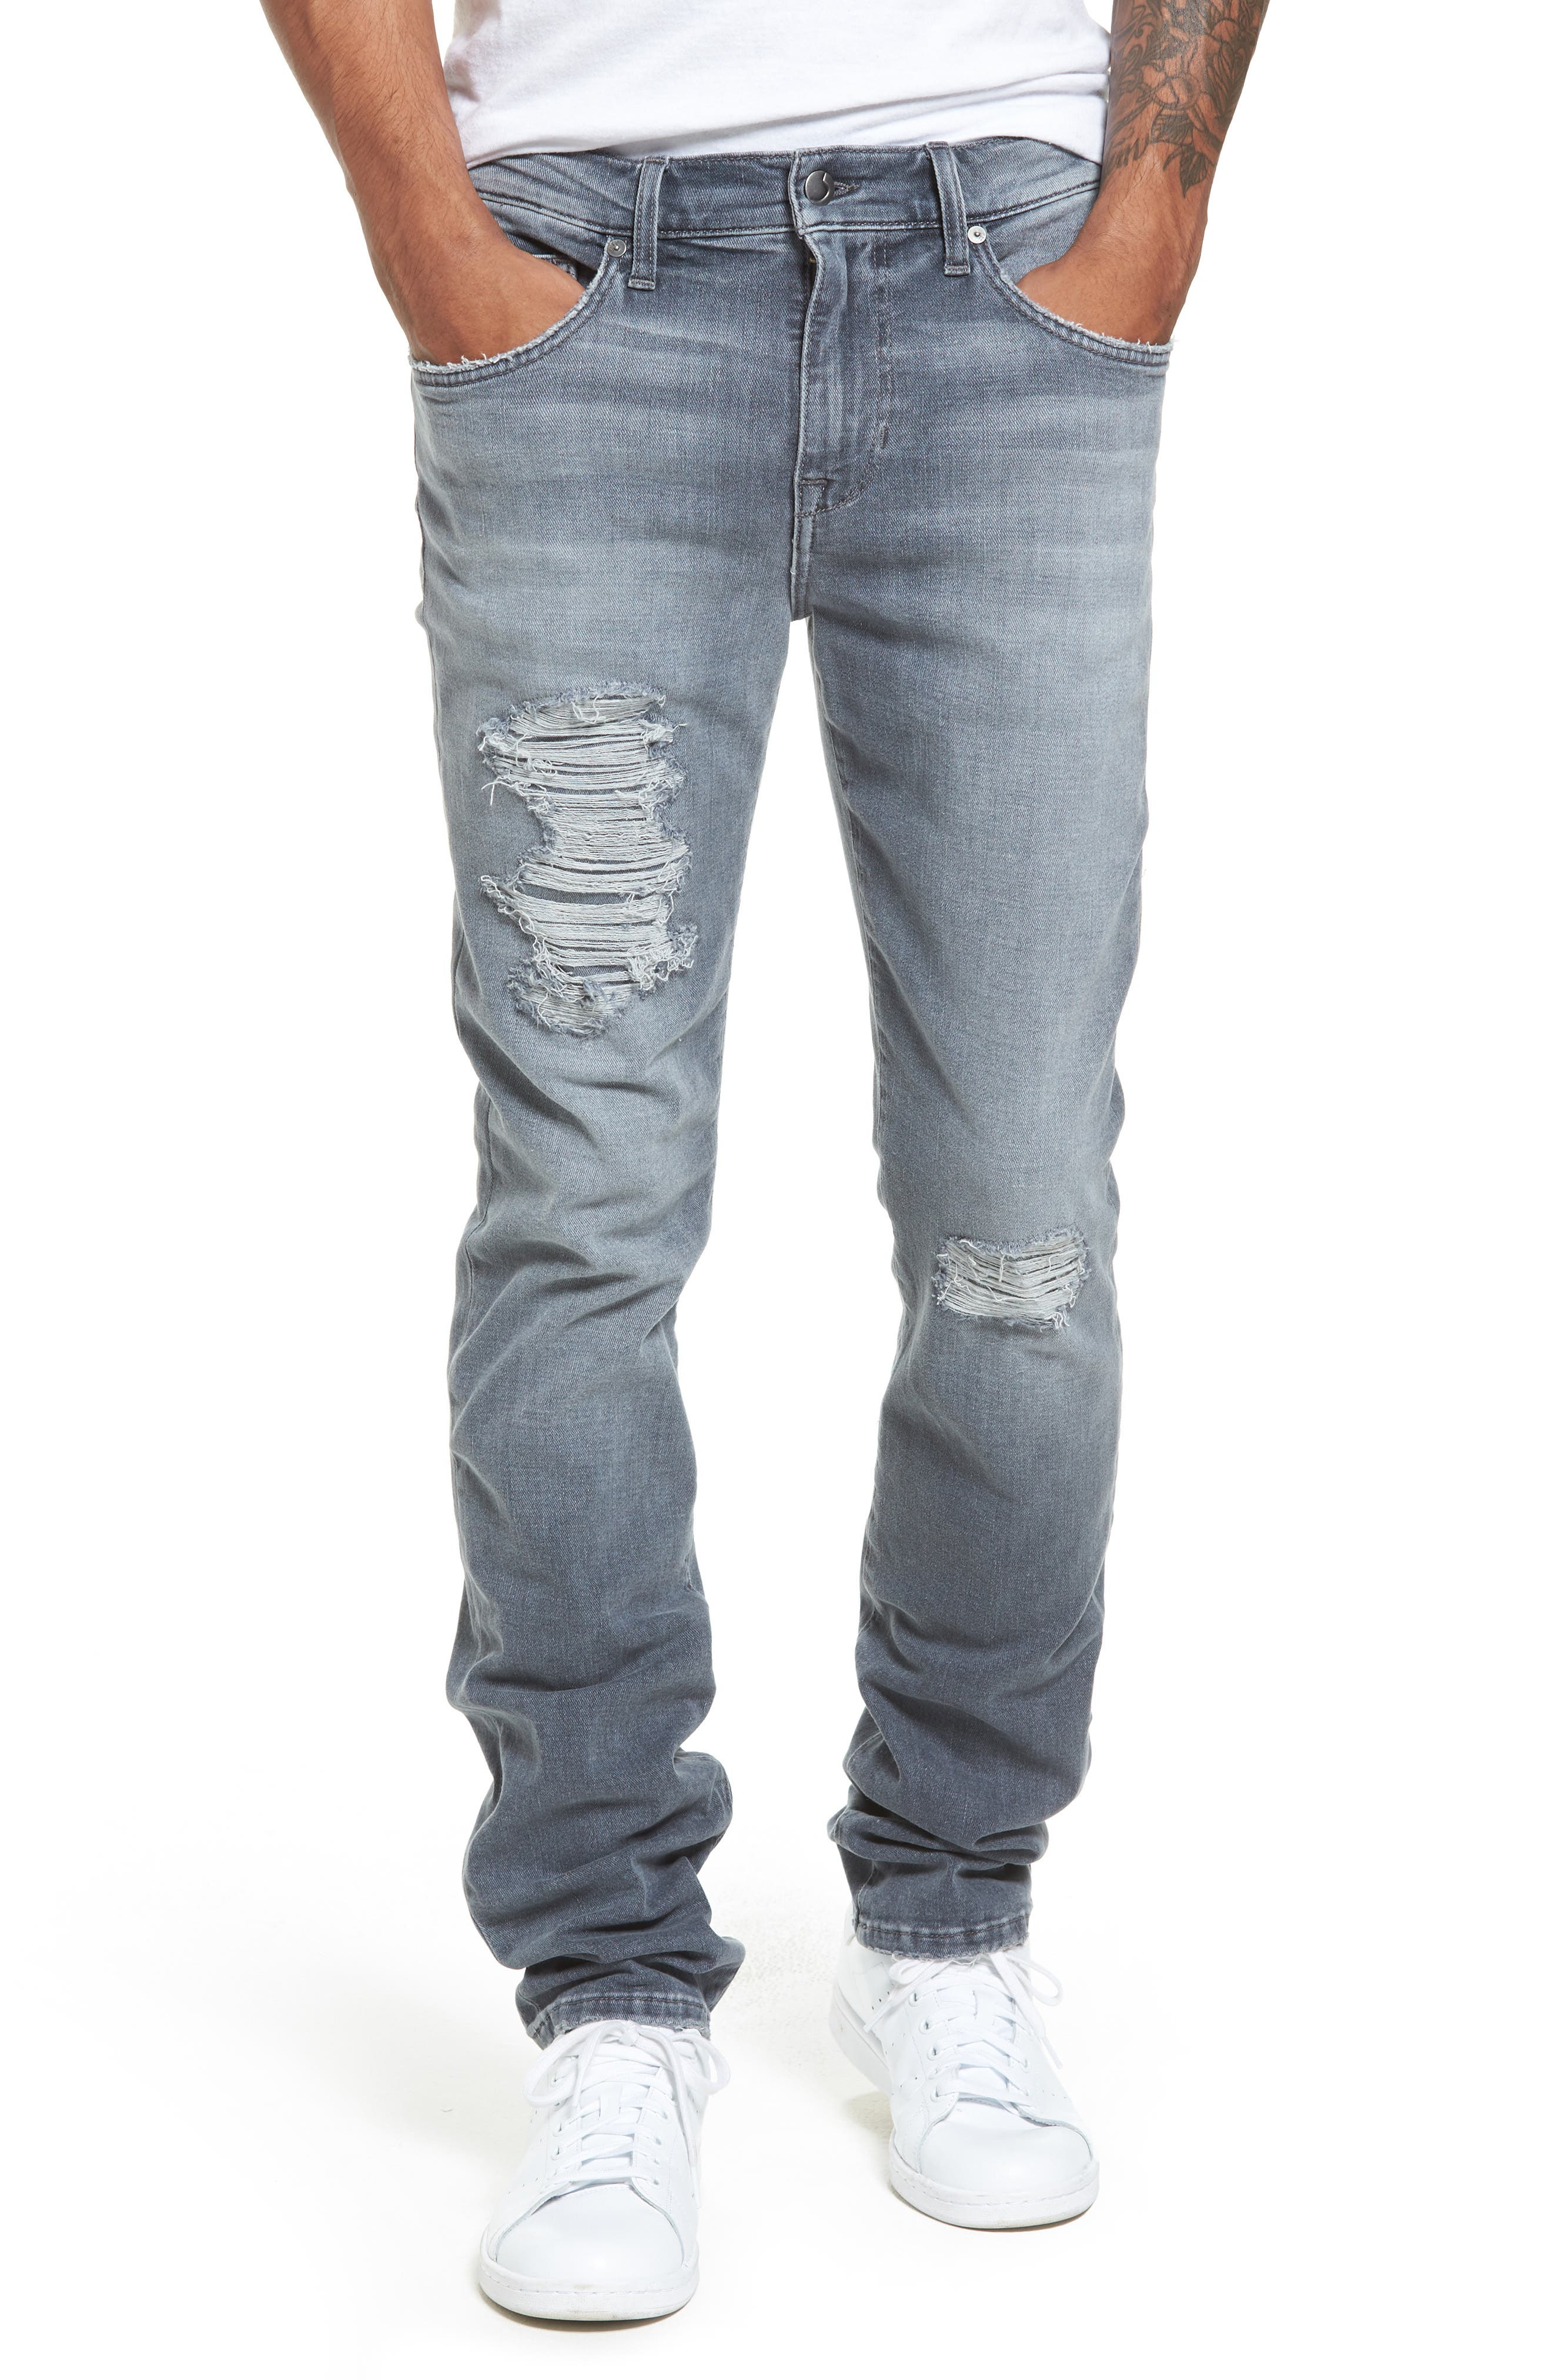 Brixton Distressed Slim Straight Fit Jeans,                         Main,                         color, 051